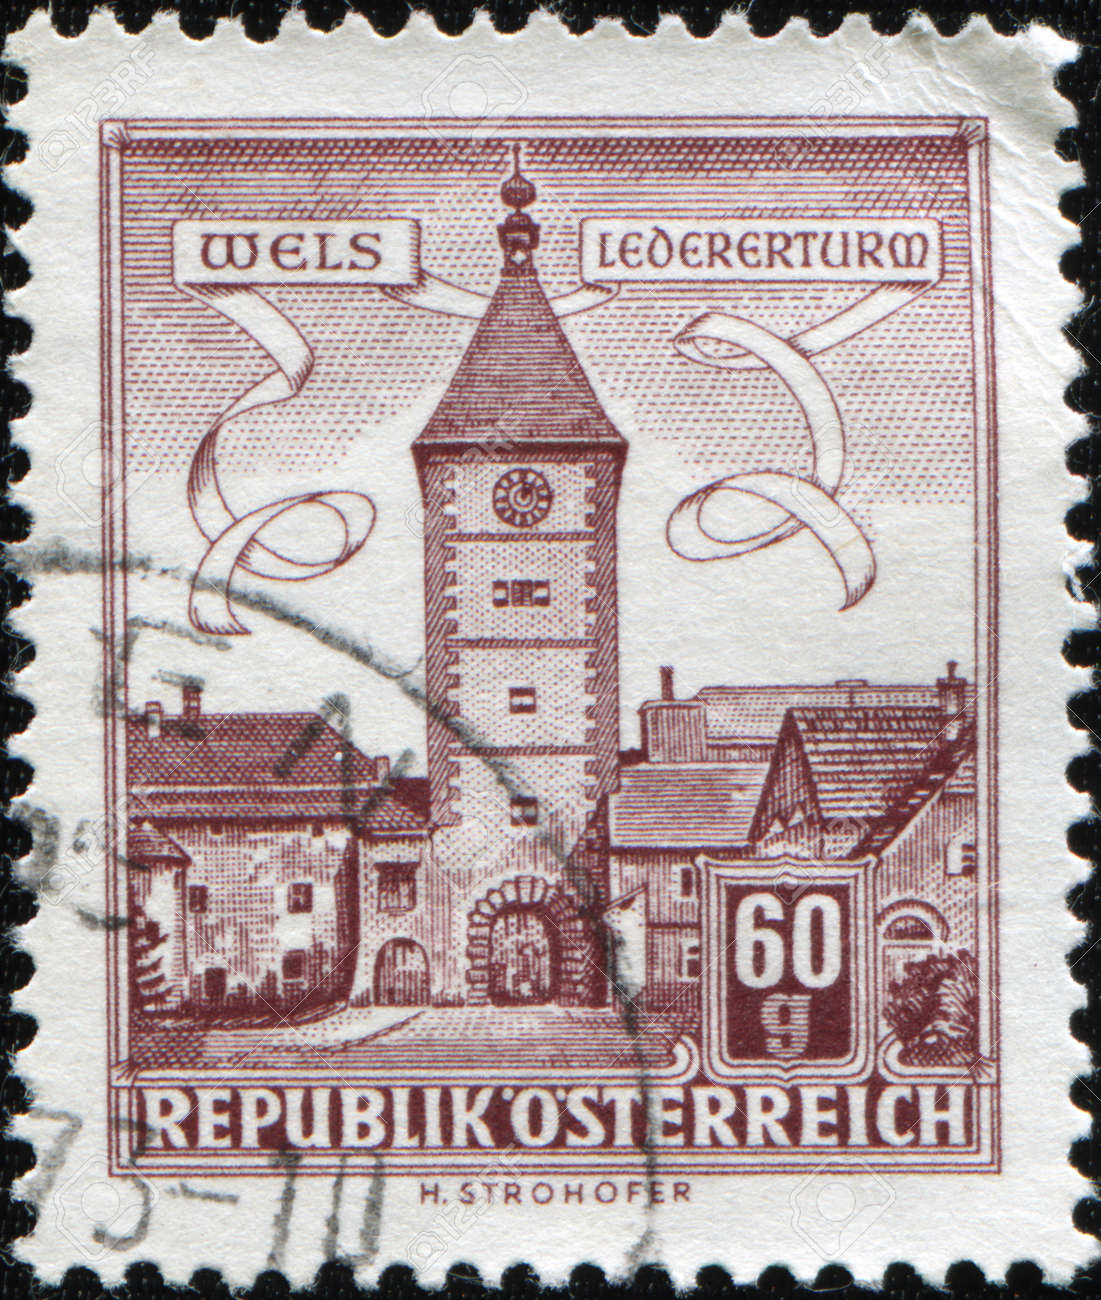 AUSTRIA - CIRCA 1962: A stamp printed in Austria shows Wells Ledererturm Clock Tower, circa 1962 Stock Photo - 8681976